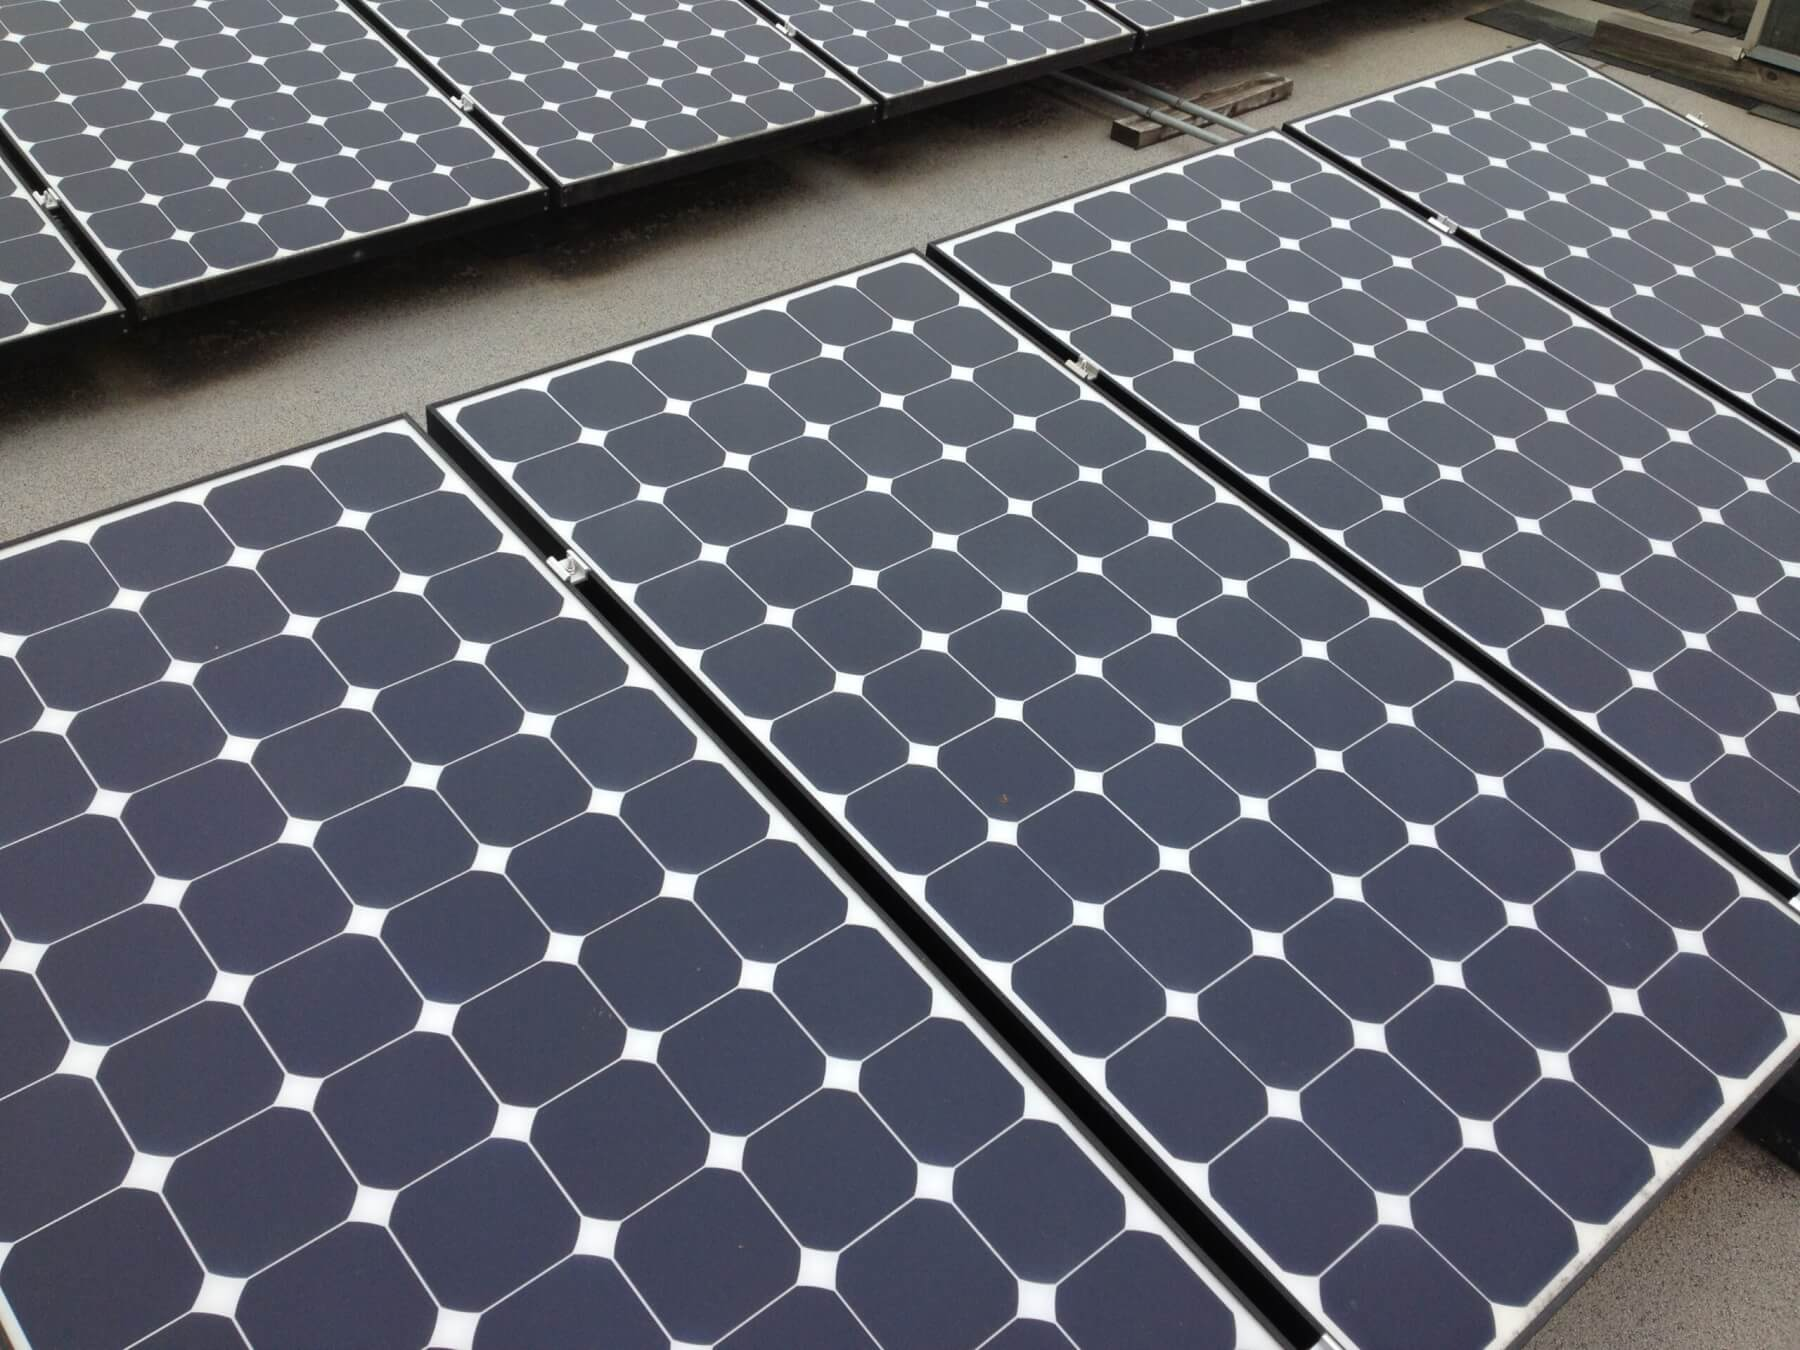 Close-up view of solar panels